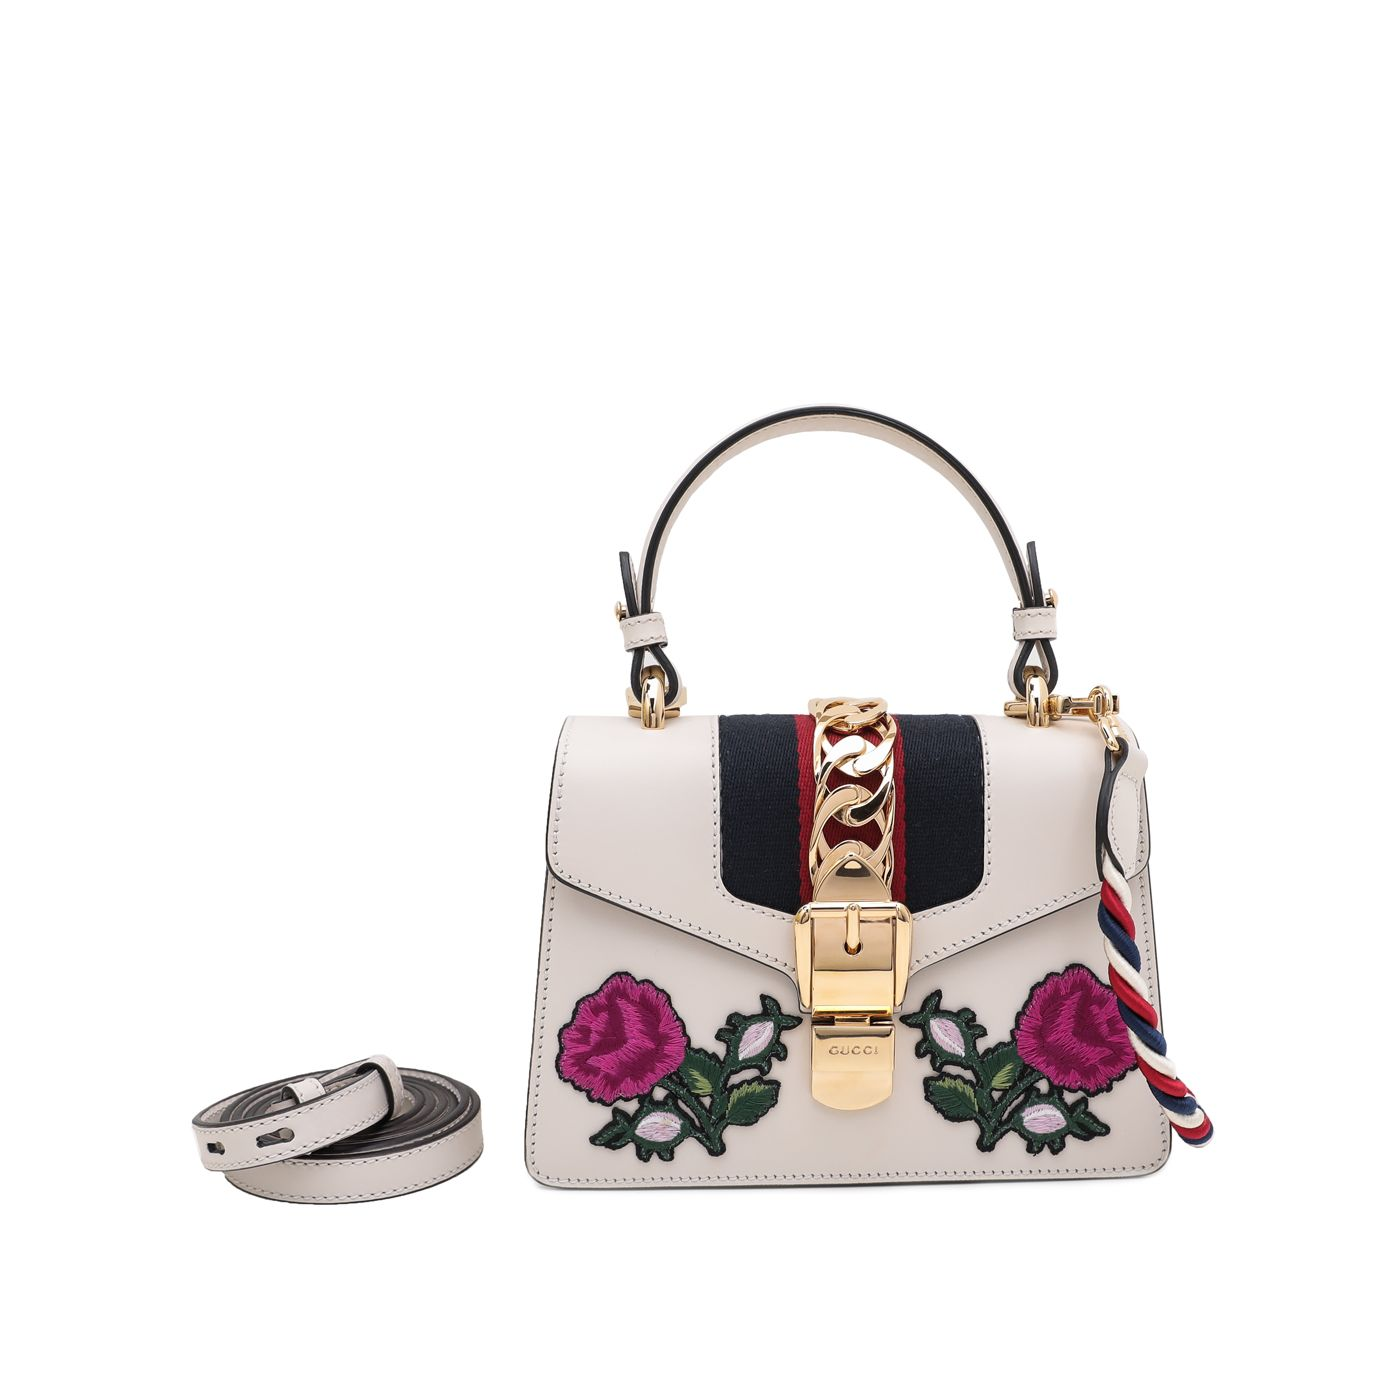 Gucci White Sylvie Floral Embroidered Bag